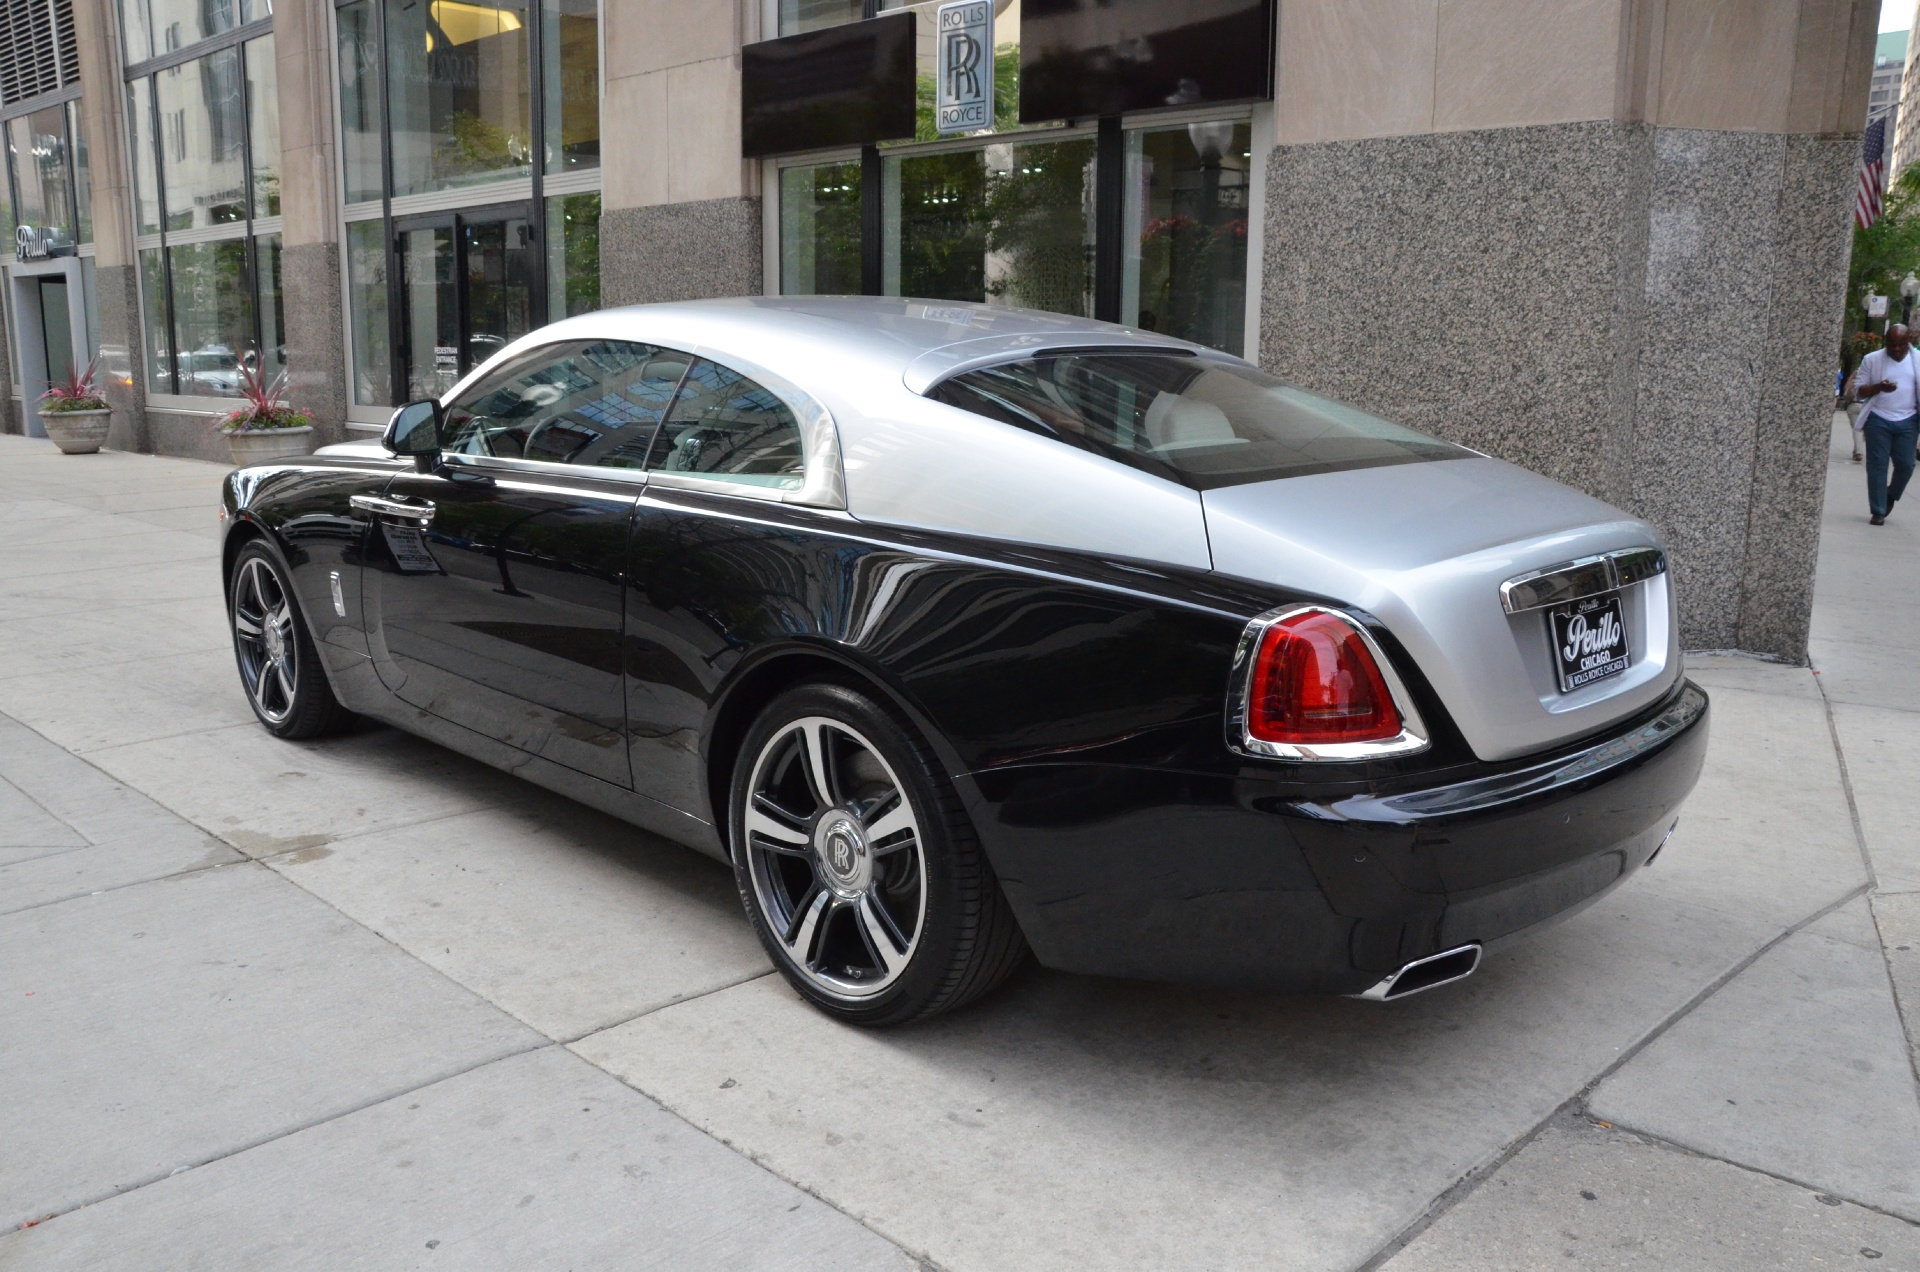 2014 rolls royce wraith stock r142 s for sale near. Black Bedroom Furniture Sets. Home Design Ideas